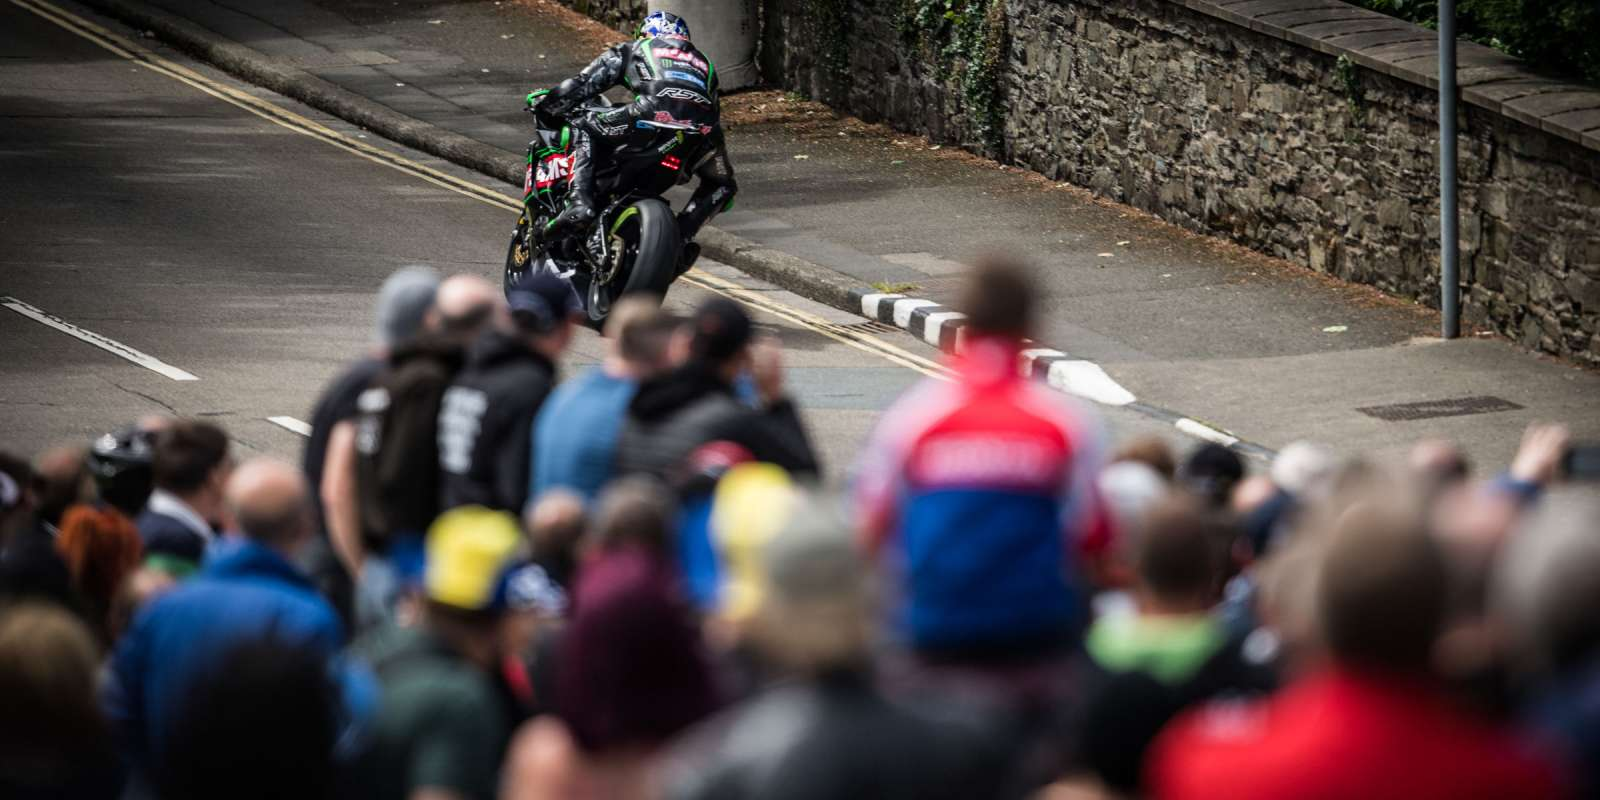 Images from the Monster Energy Supersport TT - Race 1